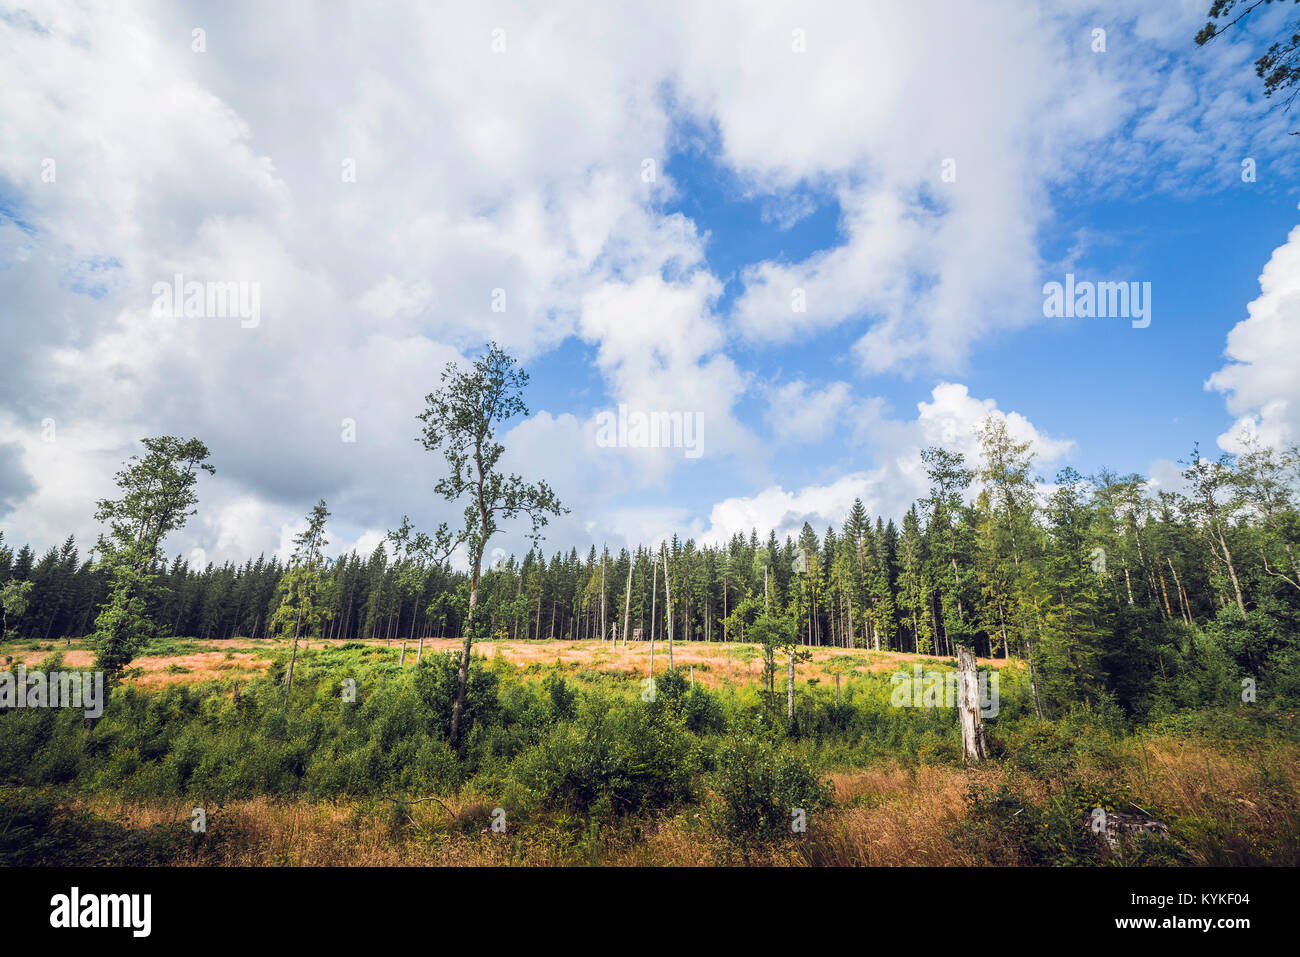 Forest clearing surrounded by tall pine trees in the summer - Stock Image